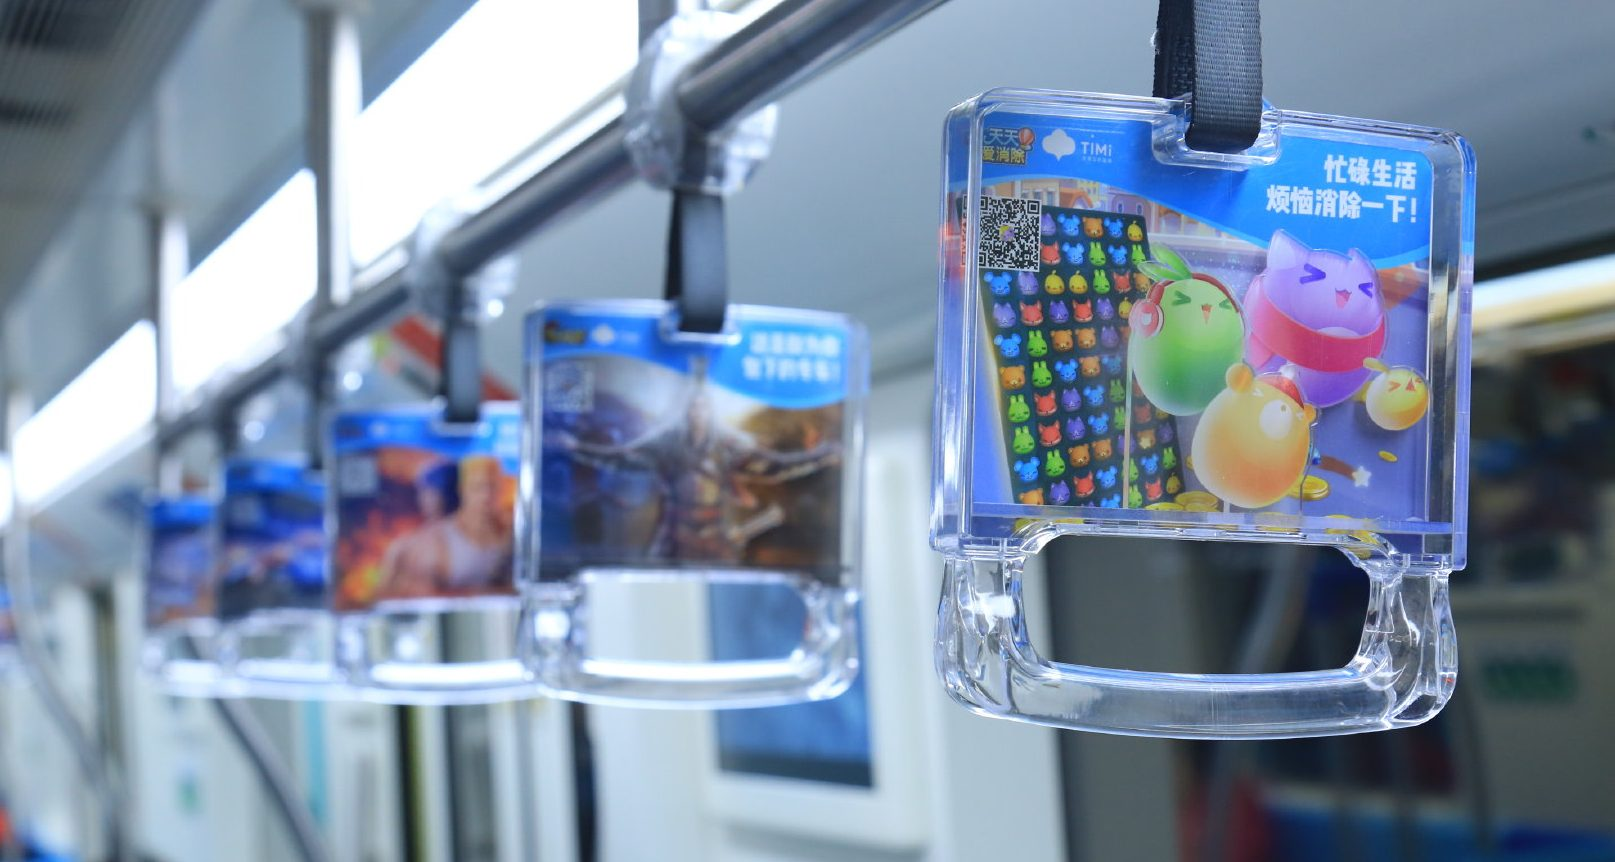 China Roundup Tencent S New Us Gaming Studio And Wechat S New Paywall Techcrunch